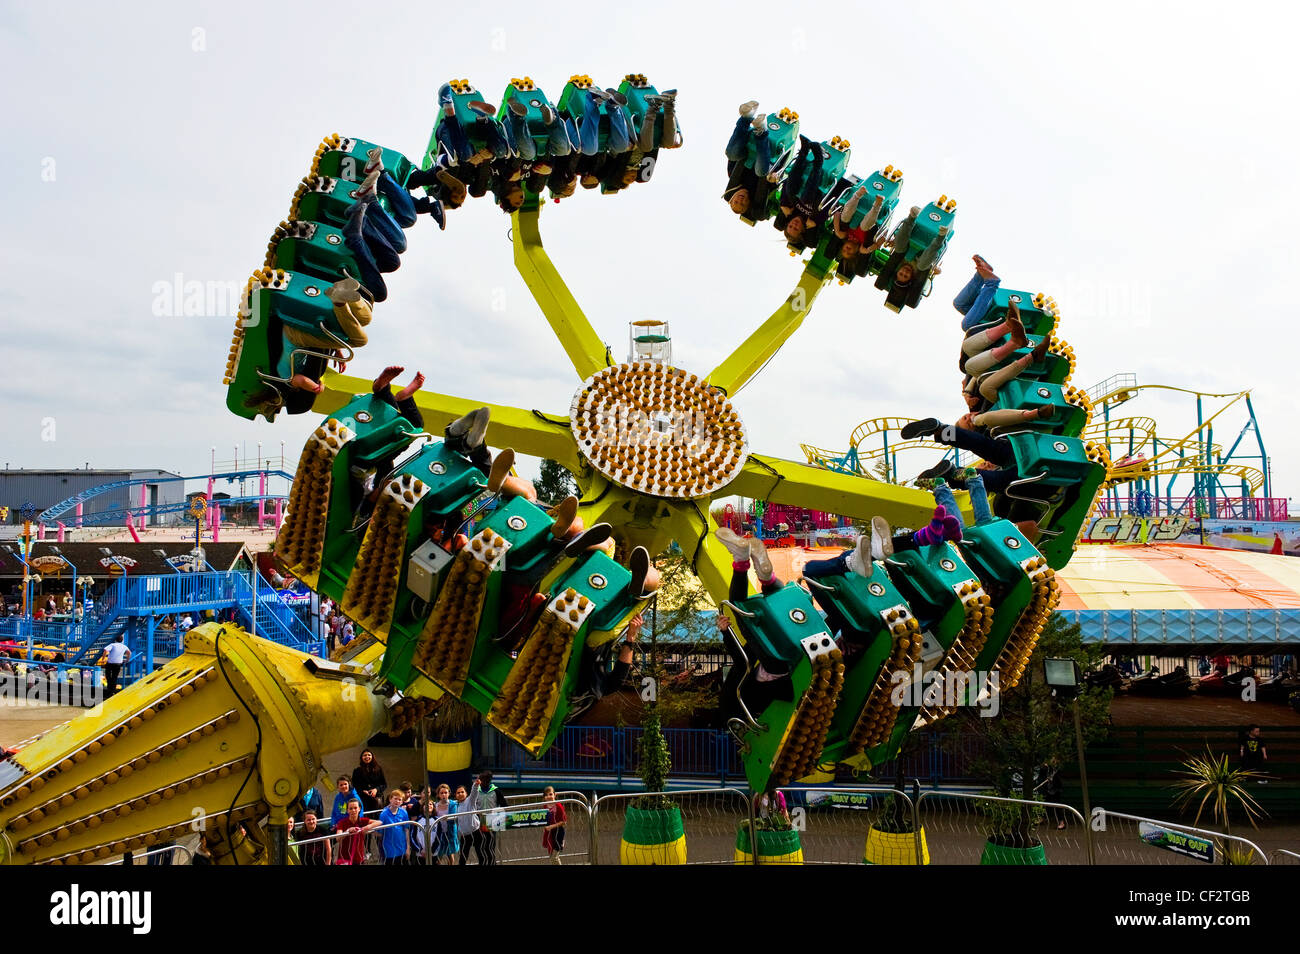 Dragon's Claw, a ride that spins people upside down at Adventure Island in Southend-on-Sea. - Stock Image